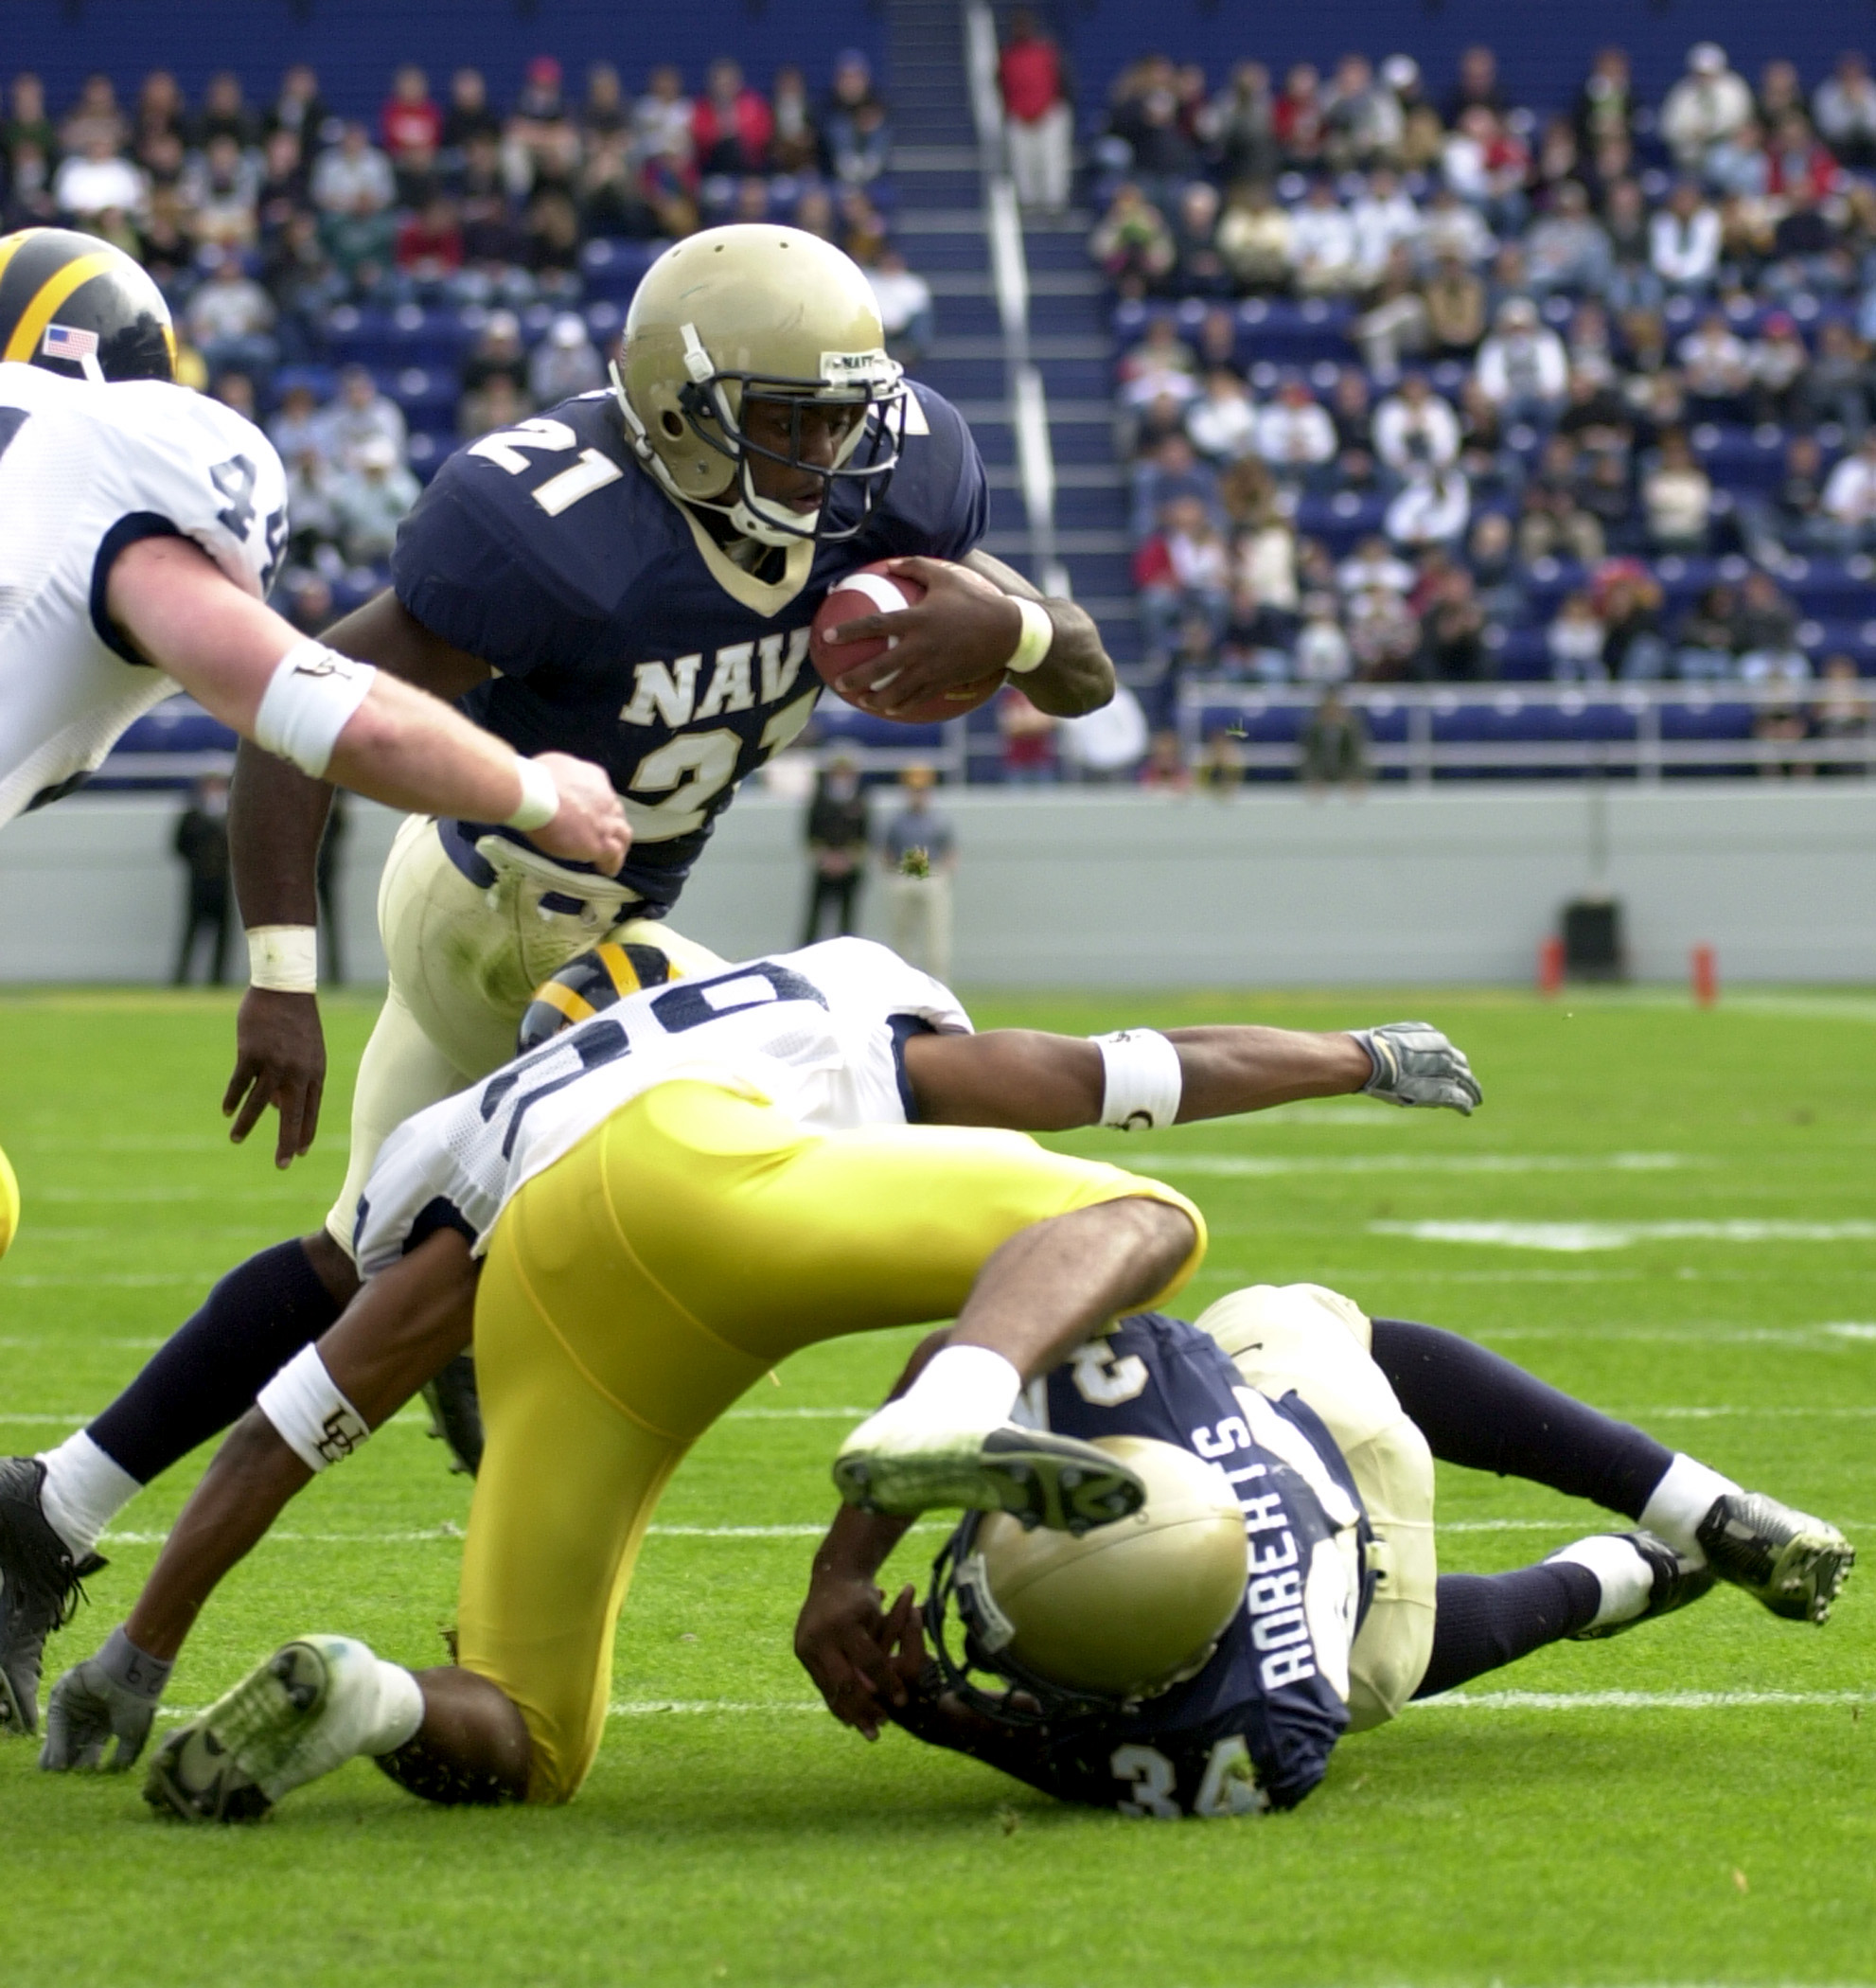 031025-N-9693M-002 Navy slot back Tony Lane passes Delaware defensive back Ryan Trask during the U.S. Naval Academy's homecoming game against Univeristy of